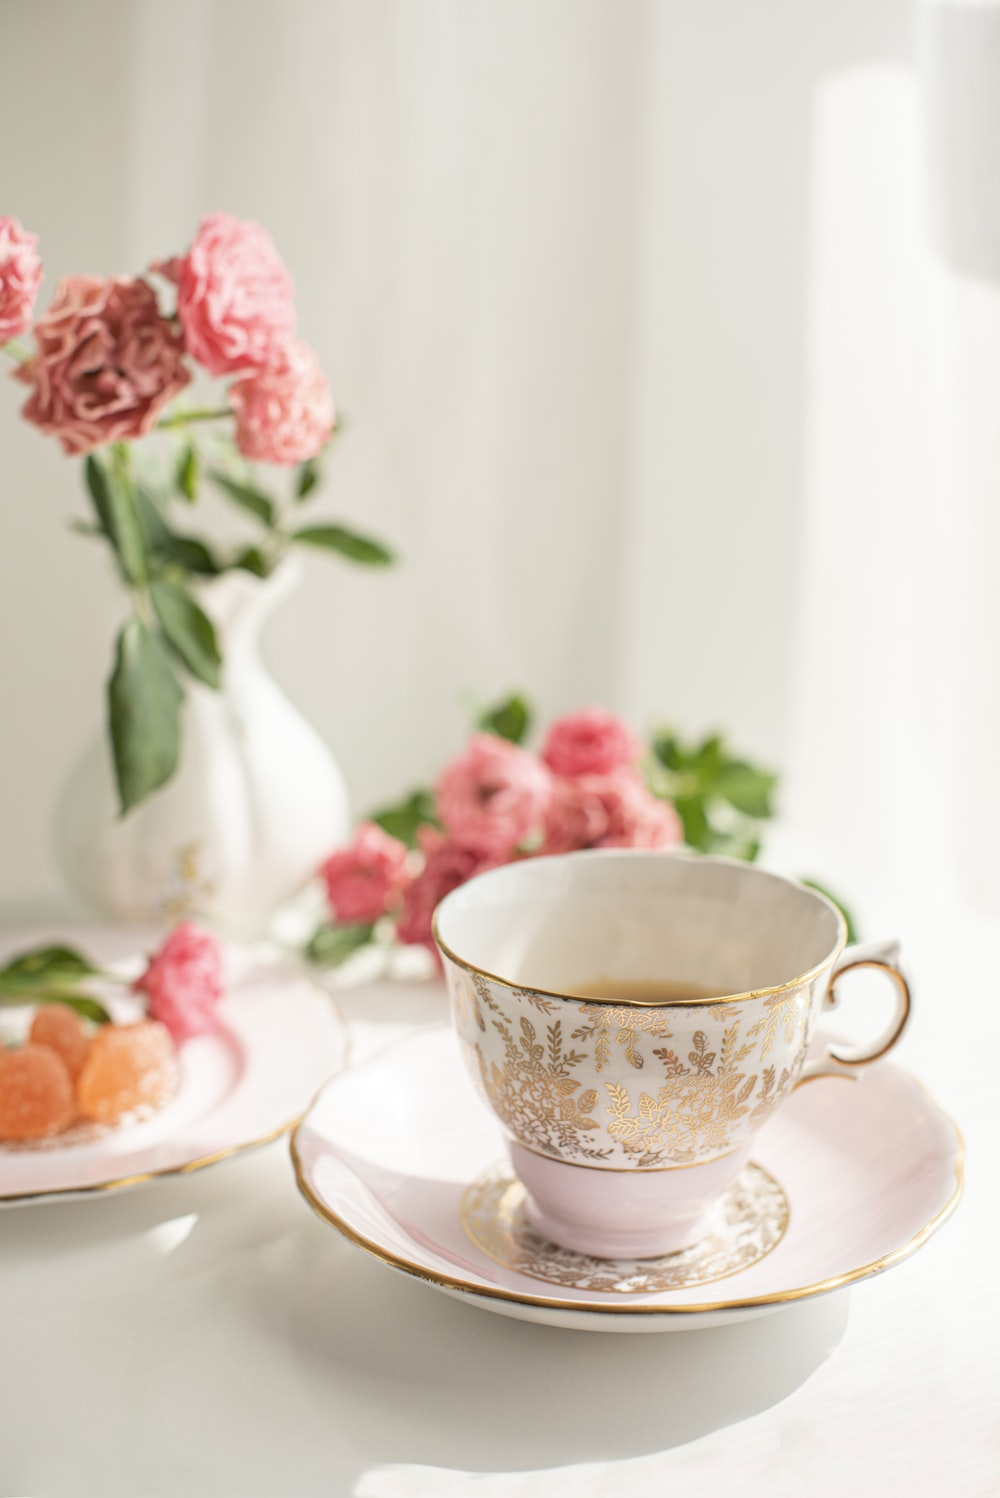 white and pink floral ceramic teacup on saucer